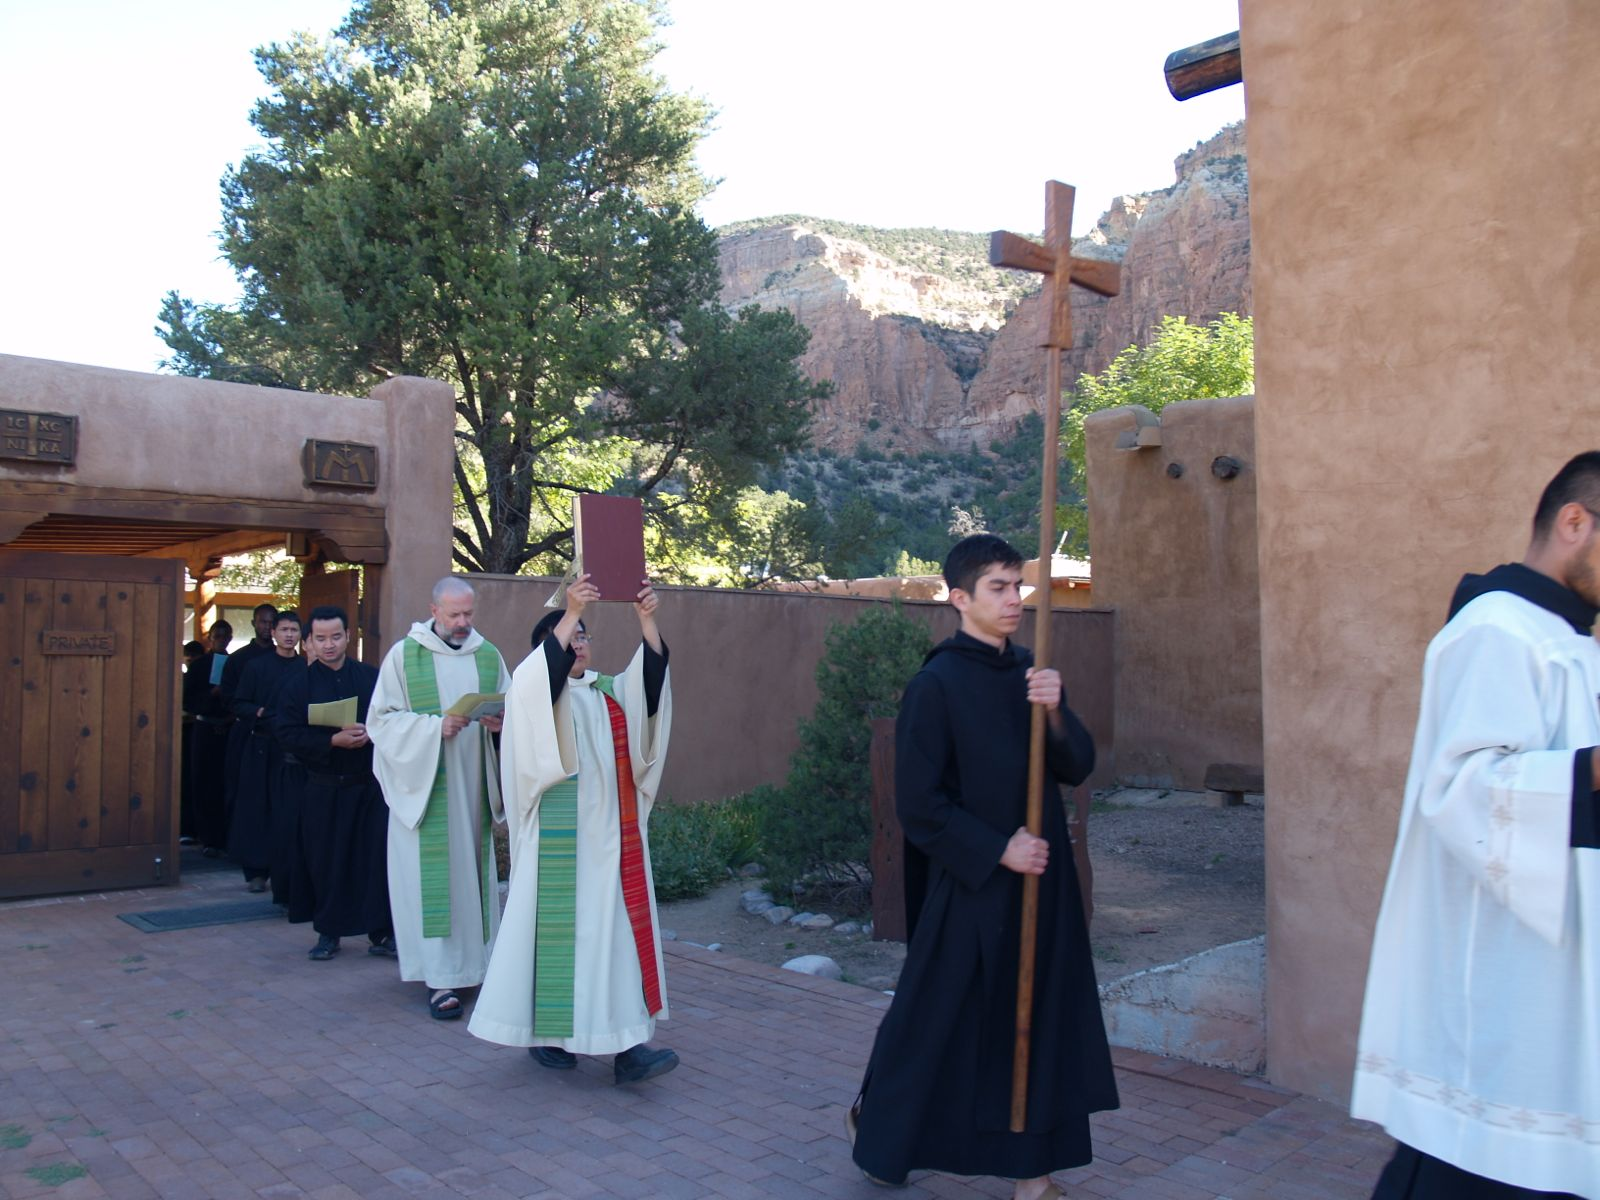 Sunday Mass procession